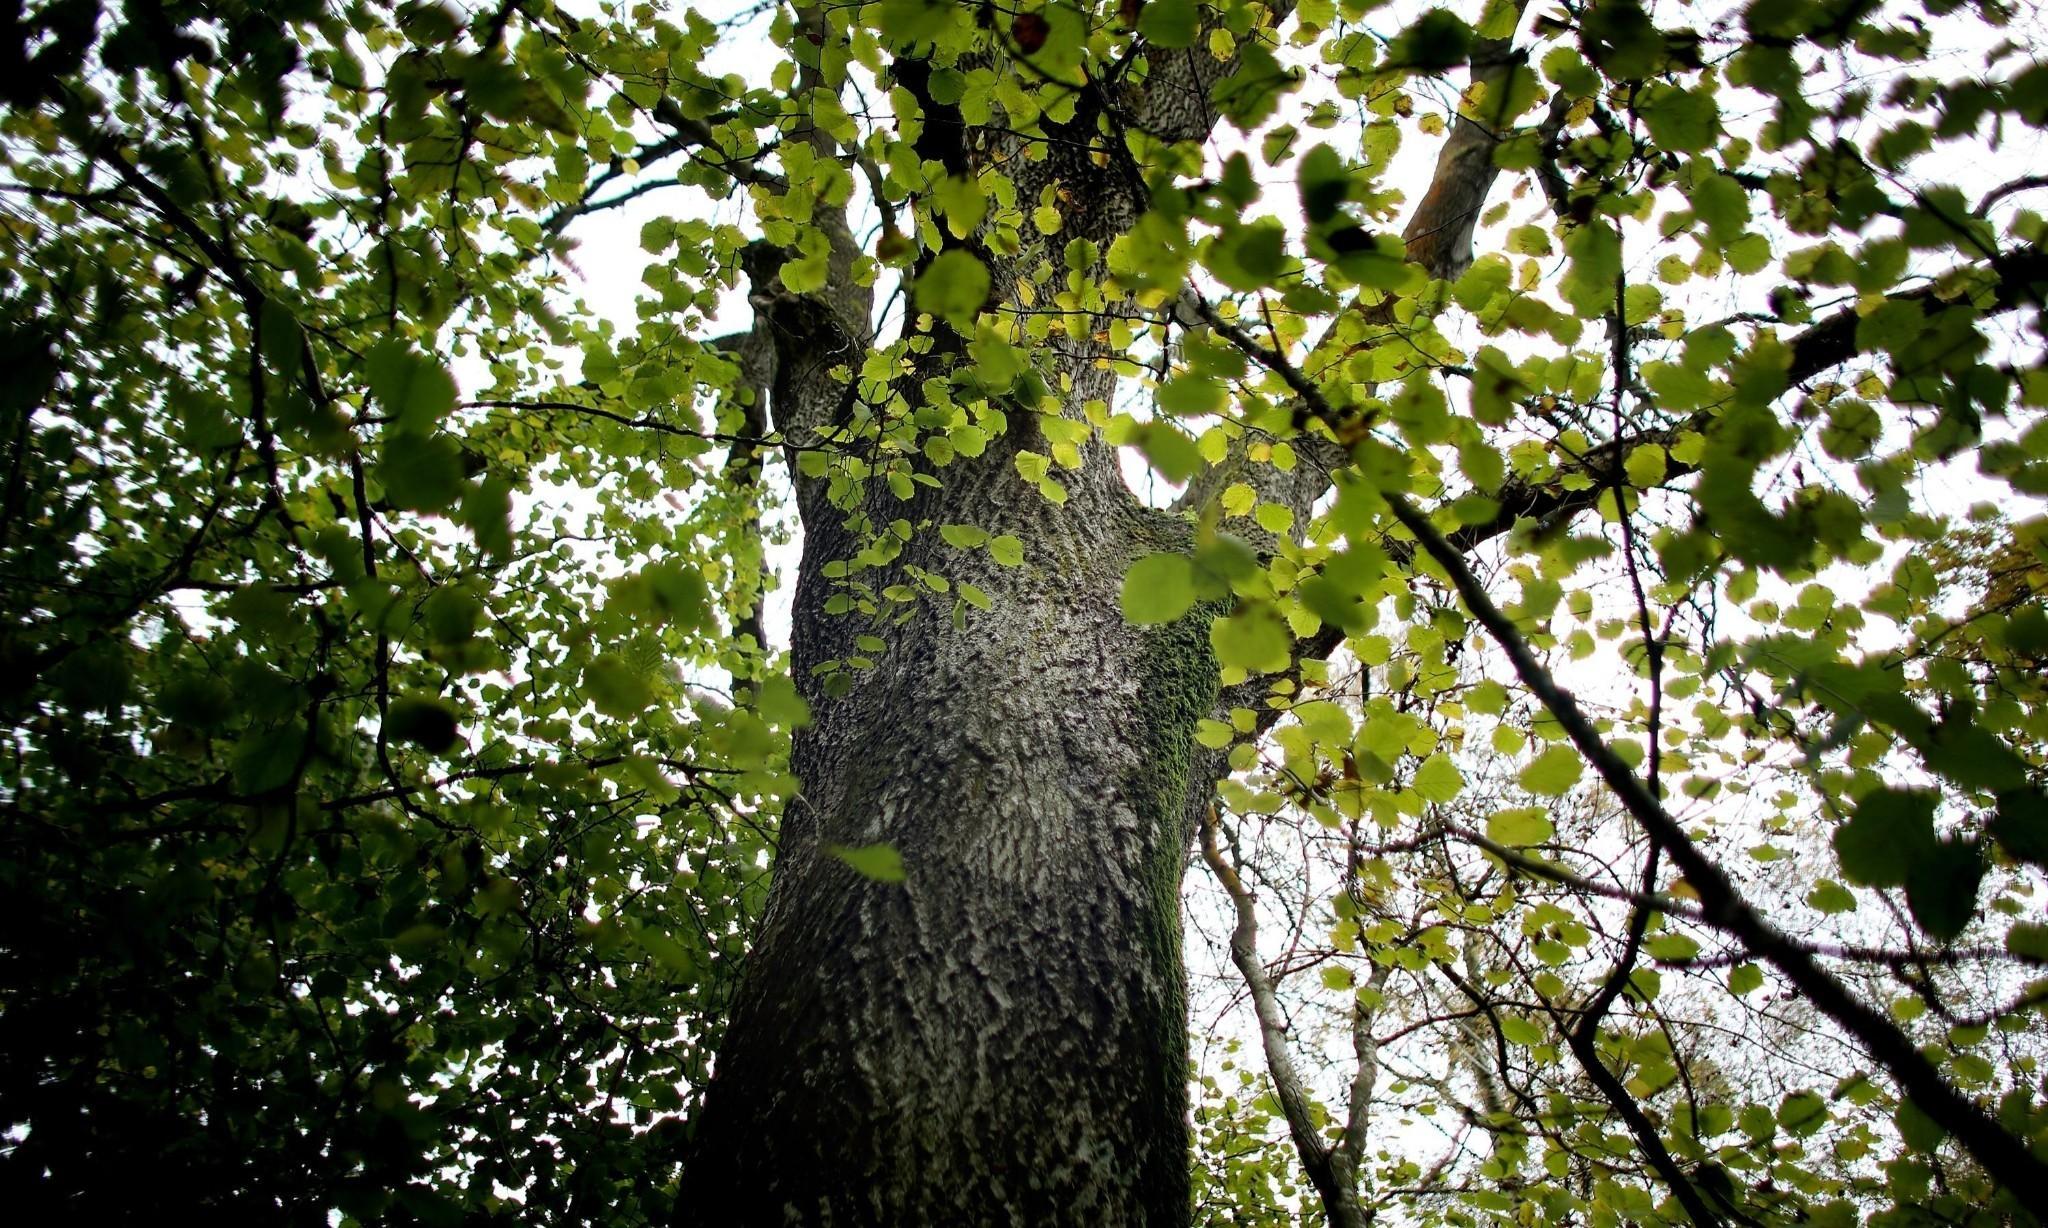 Scientists use people power to find disease-resistant ash trees